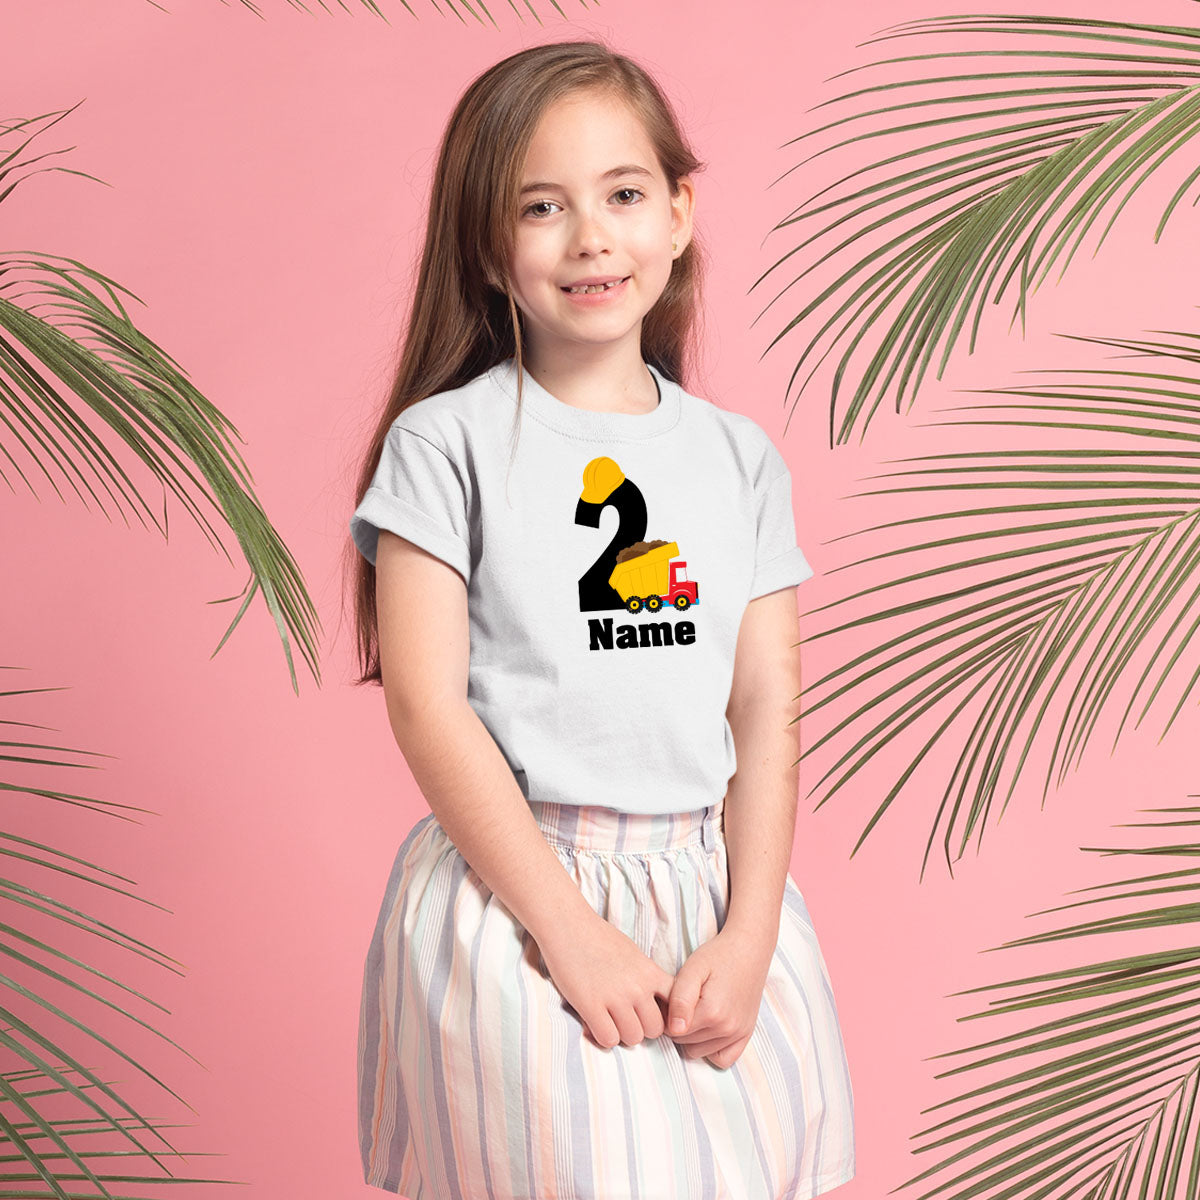 Sprinklecart Unique Personalized Name Printed Sand Lori | Yellow Cap | Kids 2nd Birthday Tshirt Choice for Your Little One